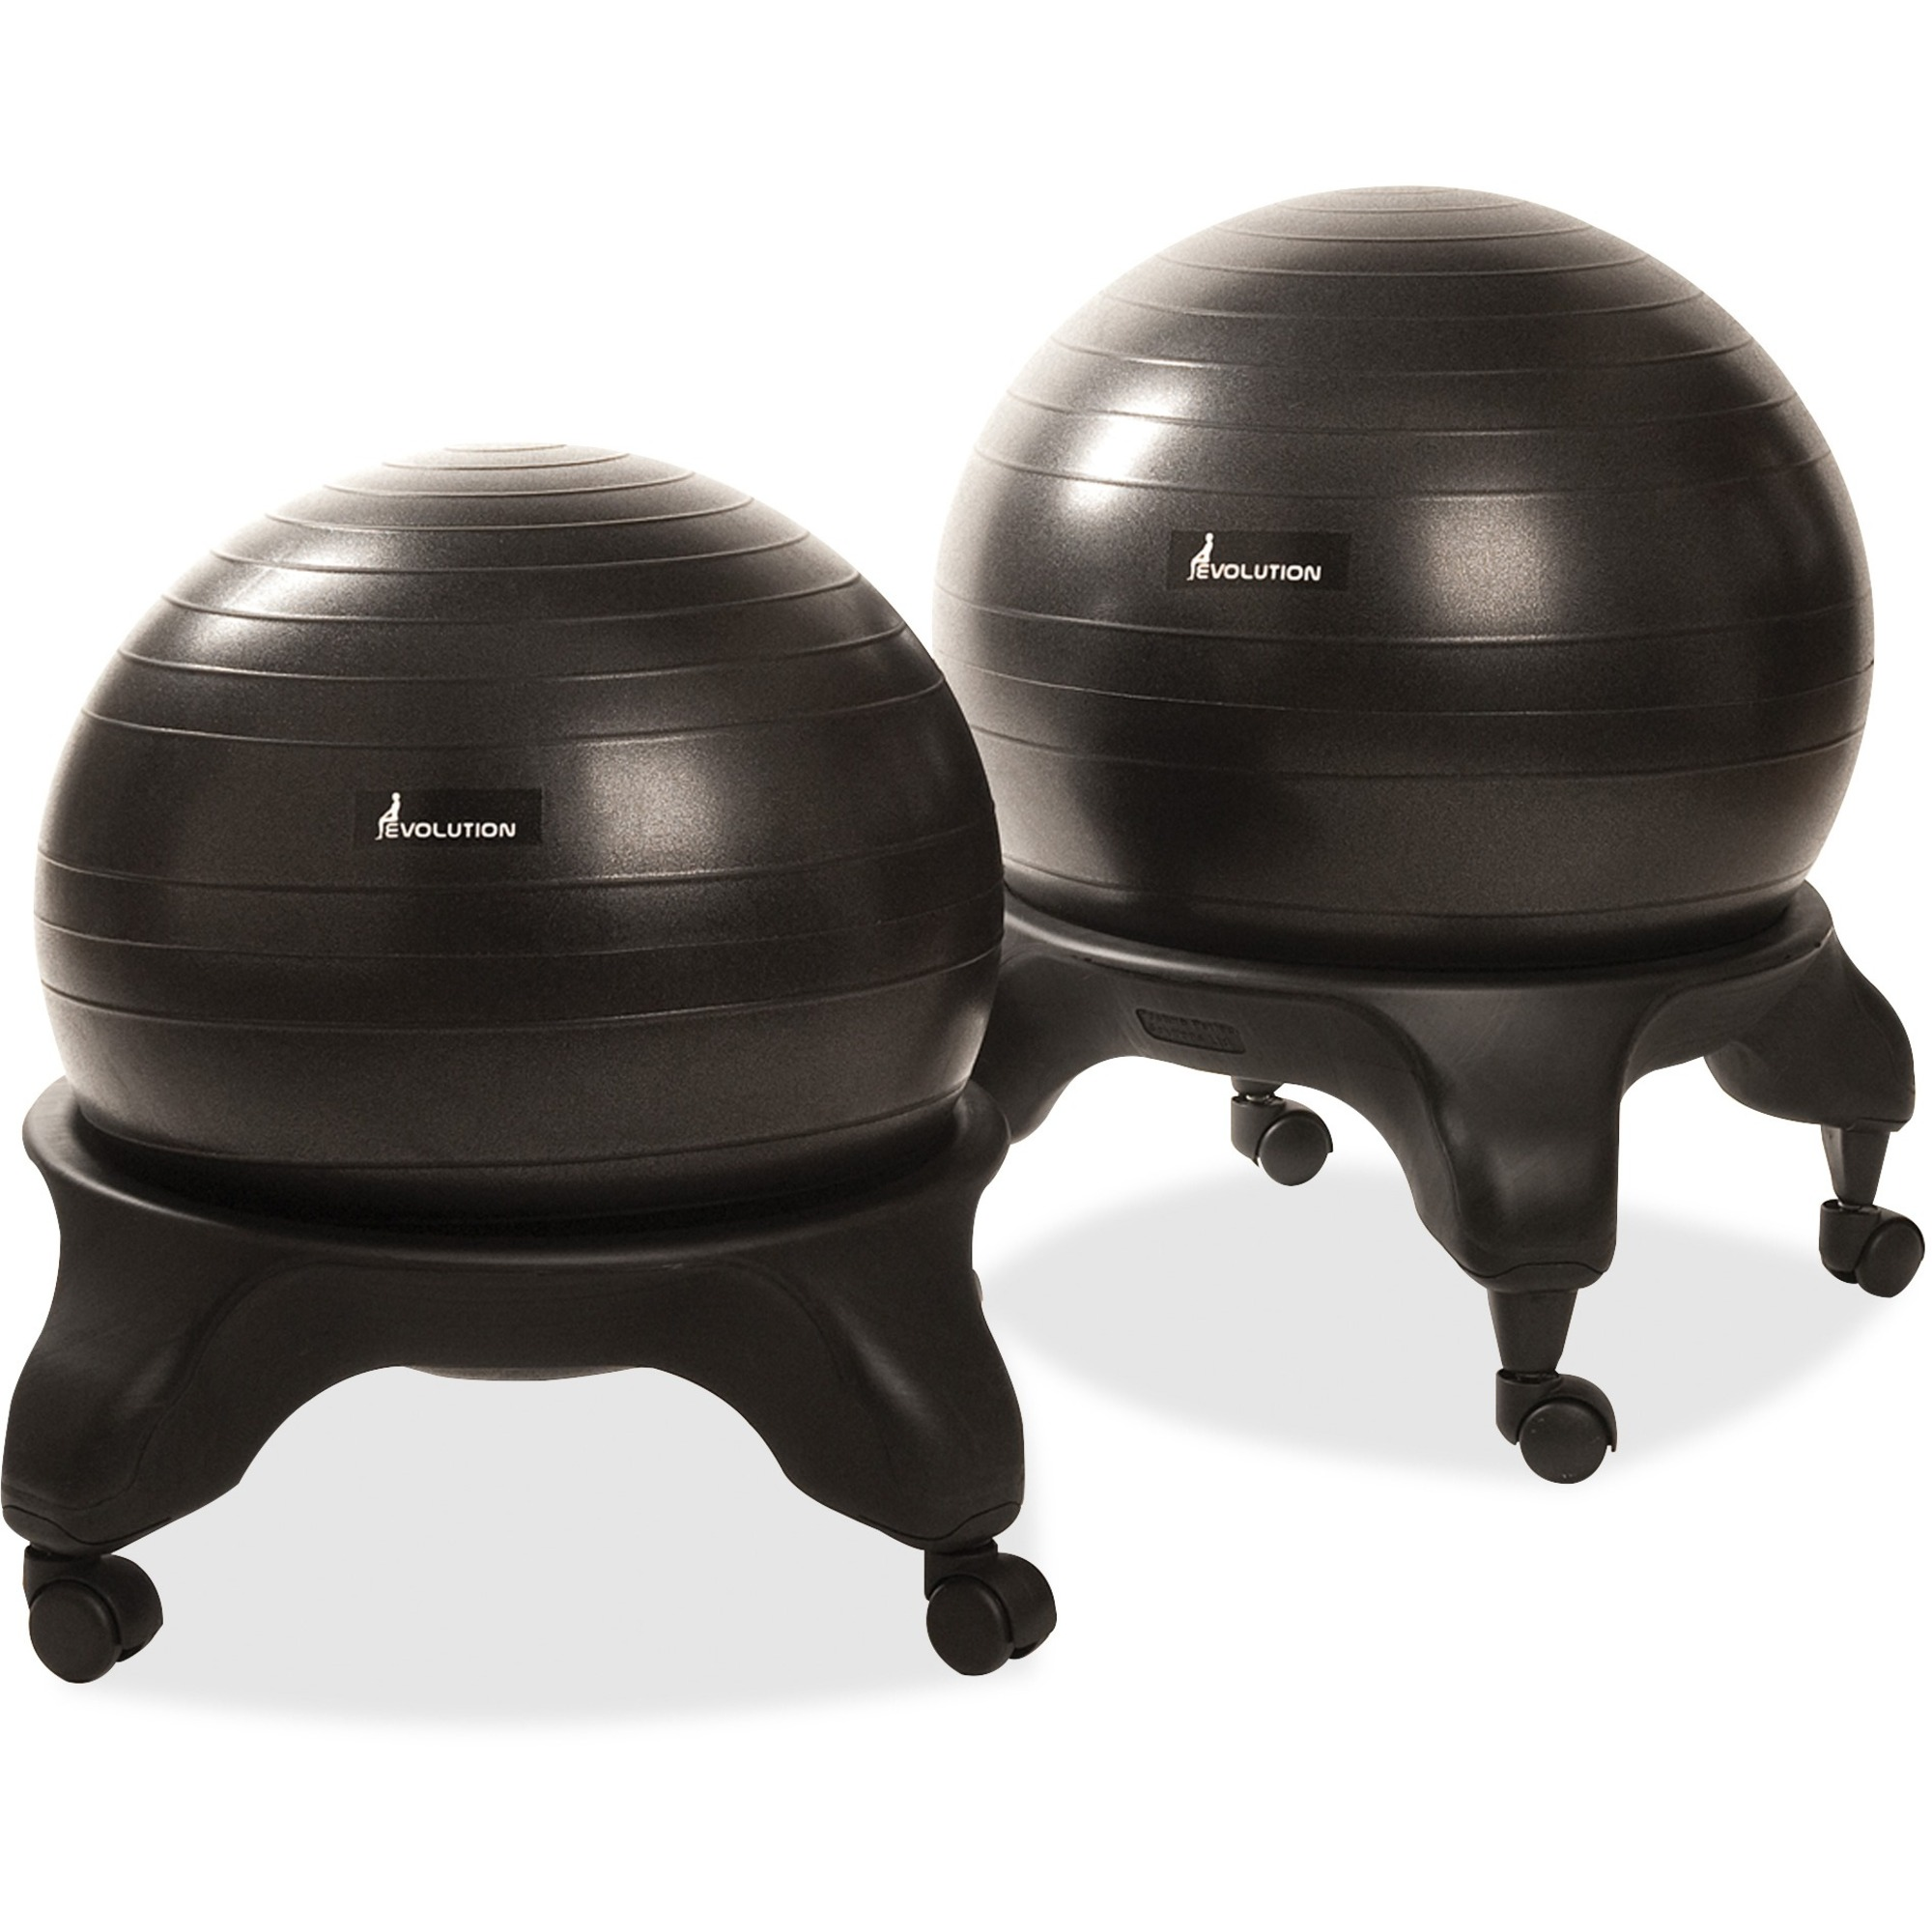 perfect posture in chair captain chairs for boats solutions evolution ball black